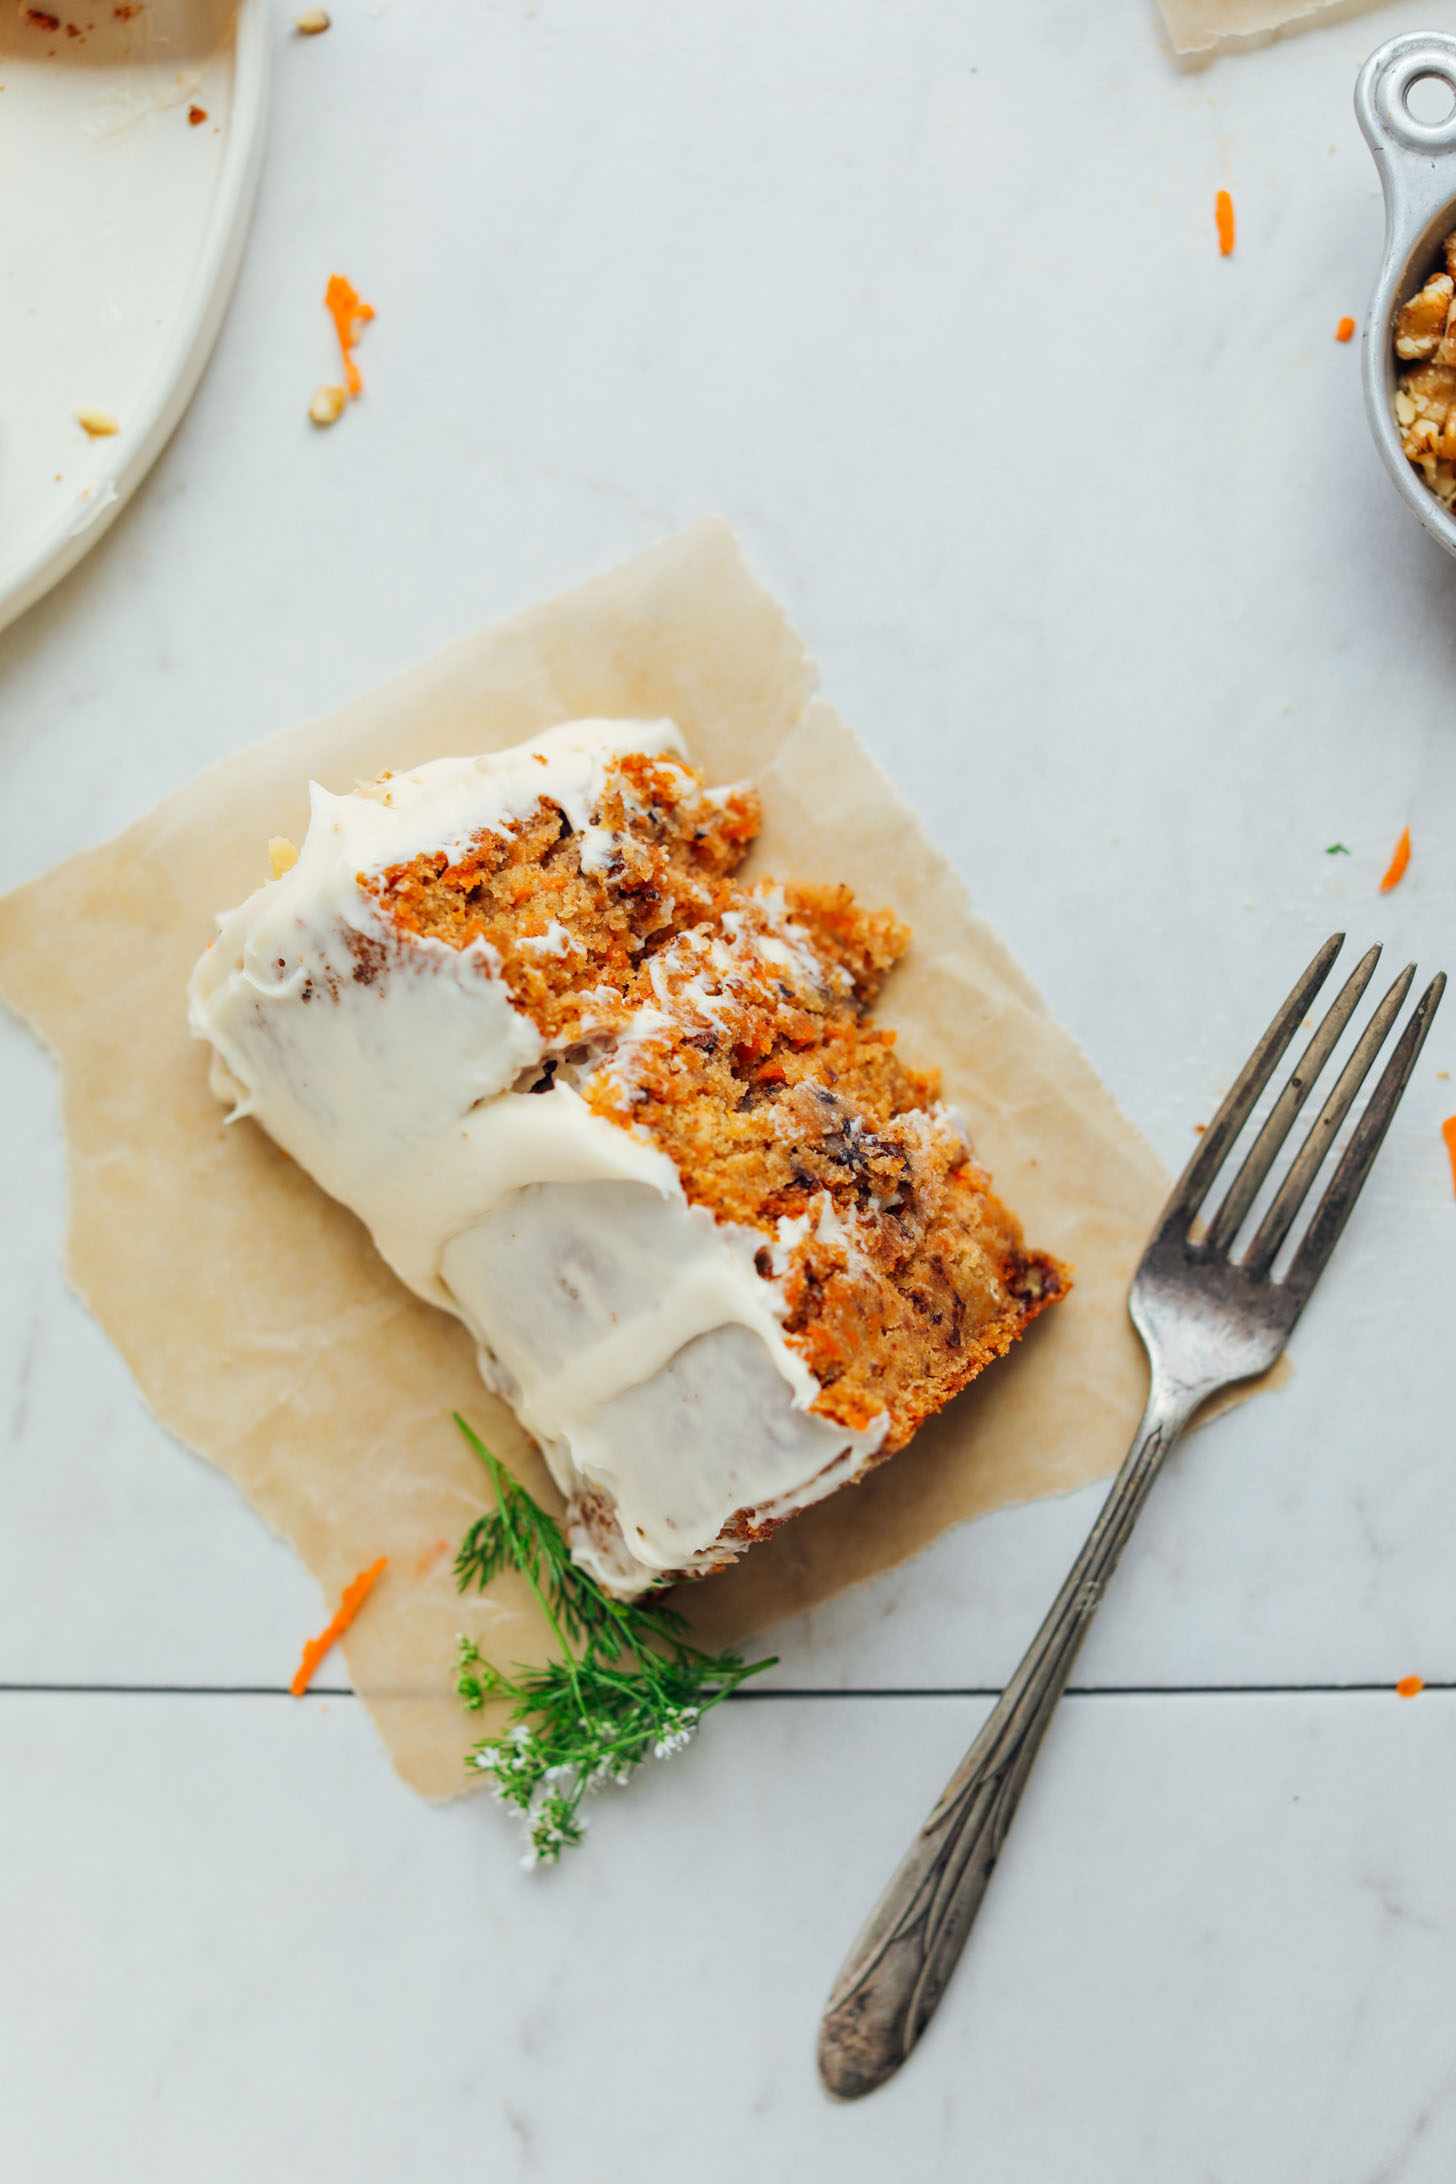 Slice of Vegan Gluten-Free Carrot Cake on a parchment paper square